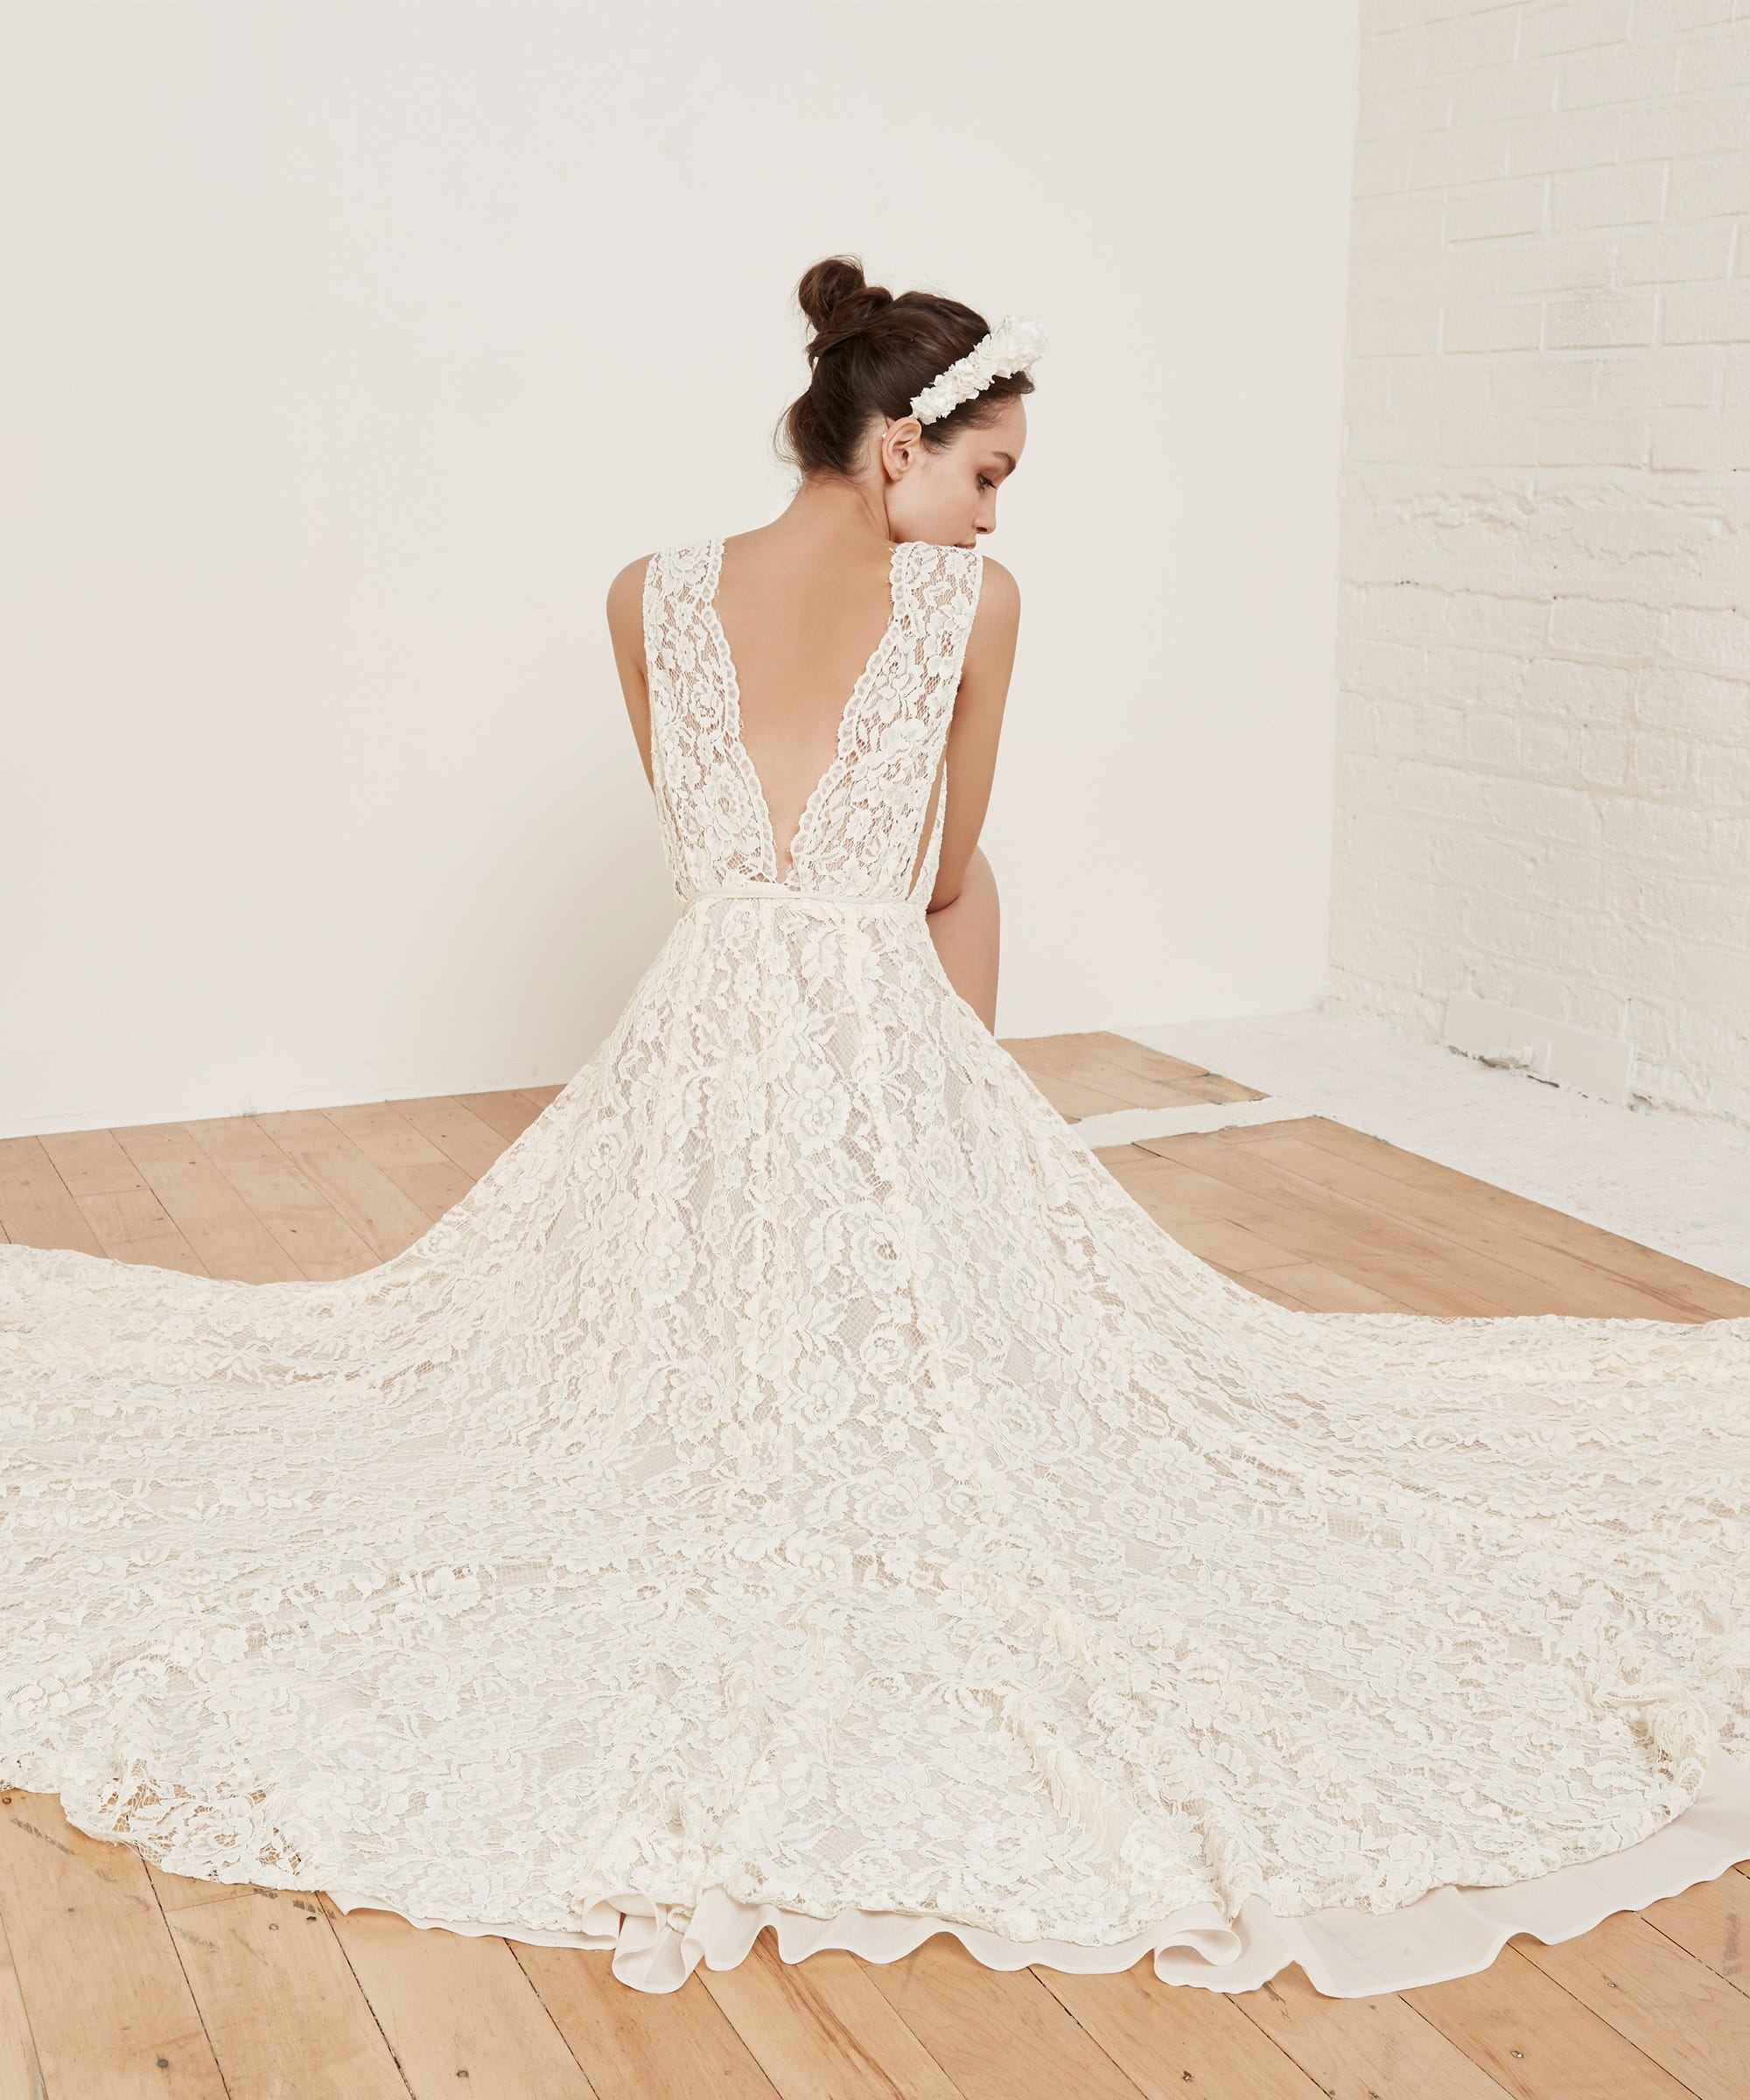 Cheap Wedding Dresses Under 500 Dollars: Reformation Spring 2016 Bridal Collection